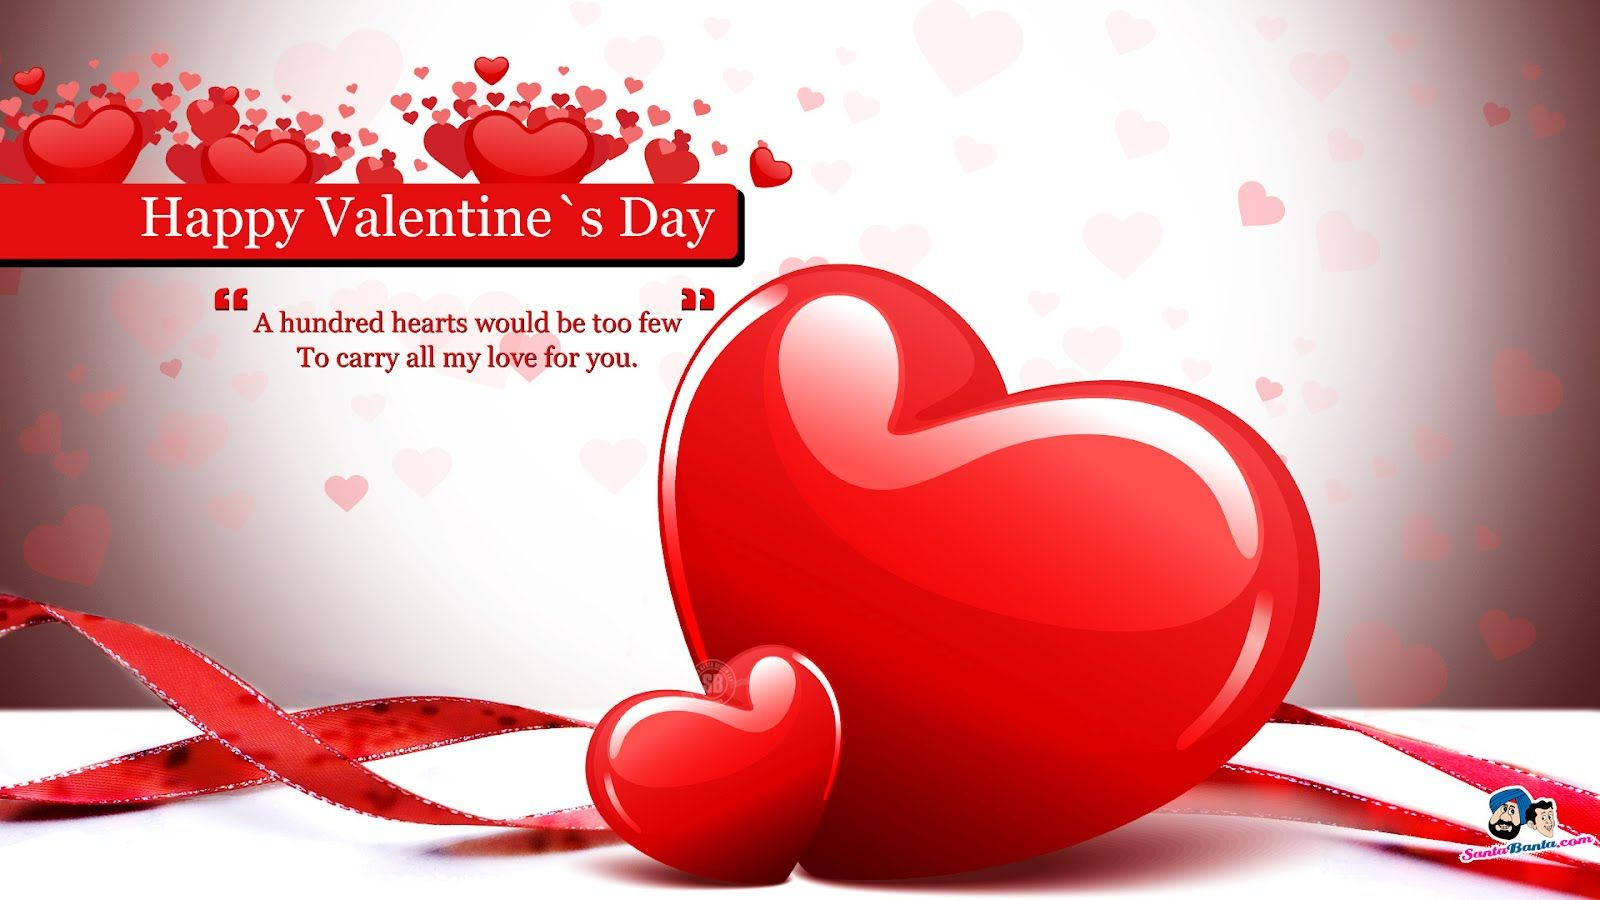 Beautiful Valentine Day Greetings with Full of Love valentineday – Happy Valentines Day 2015 Cards